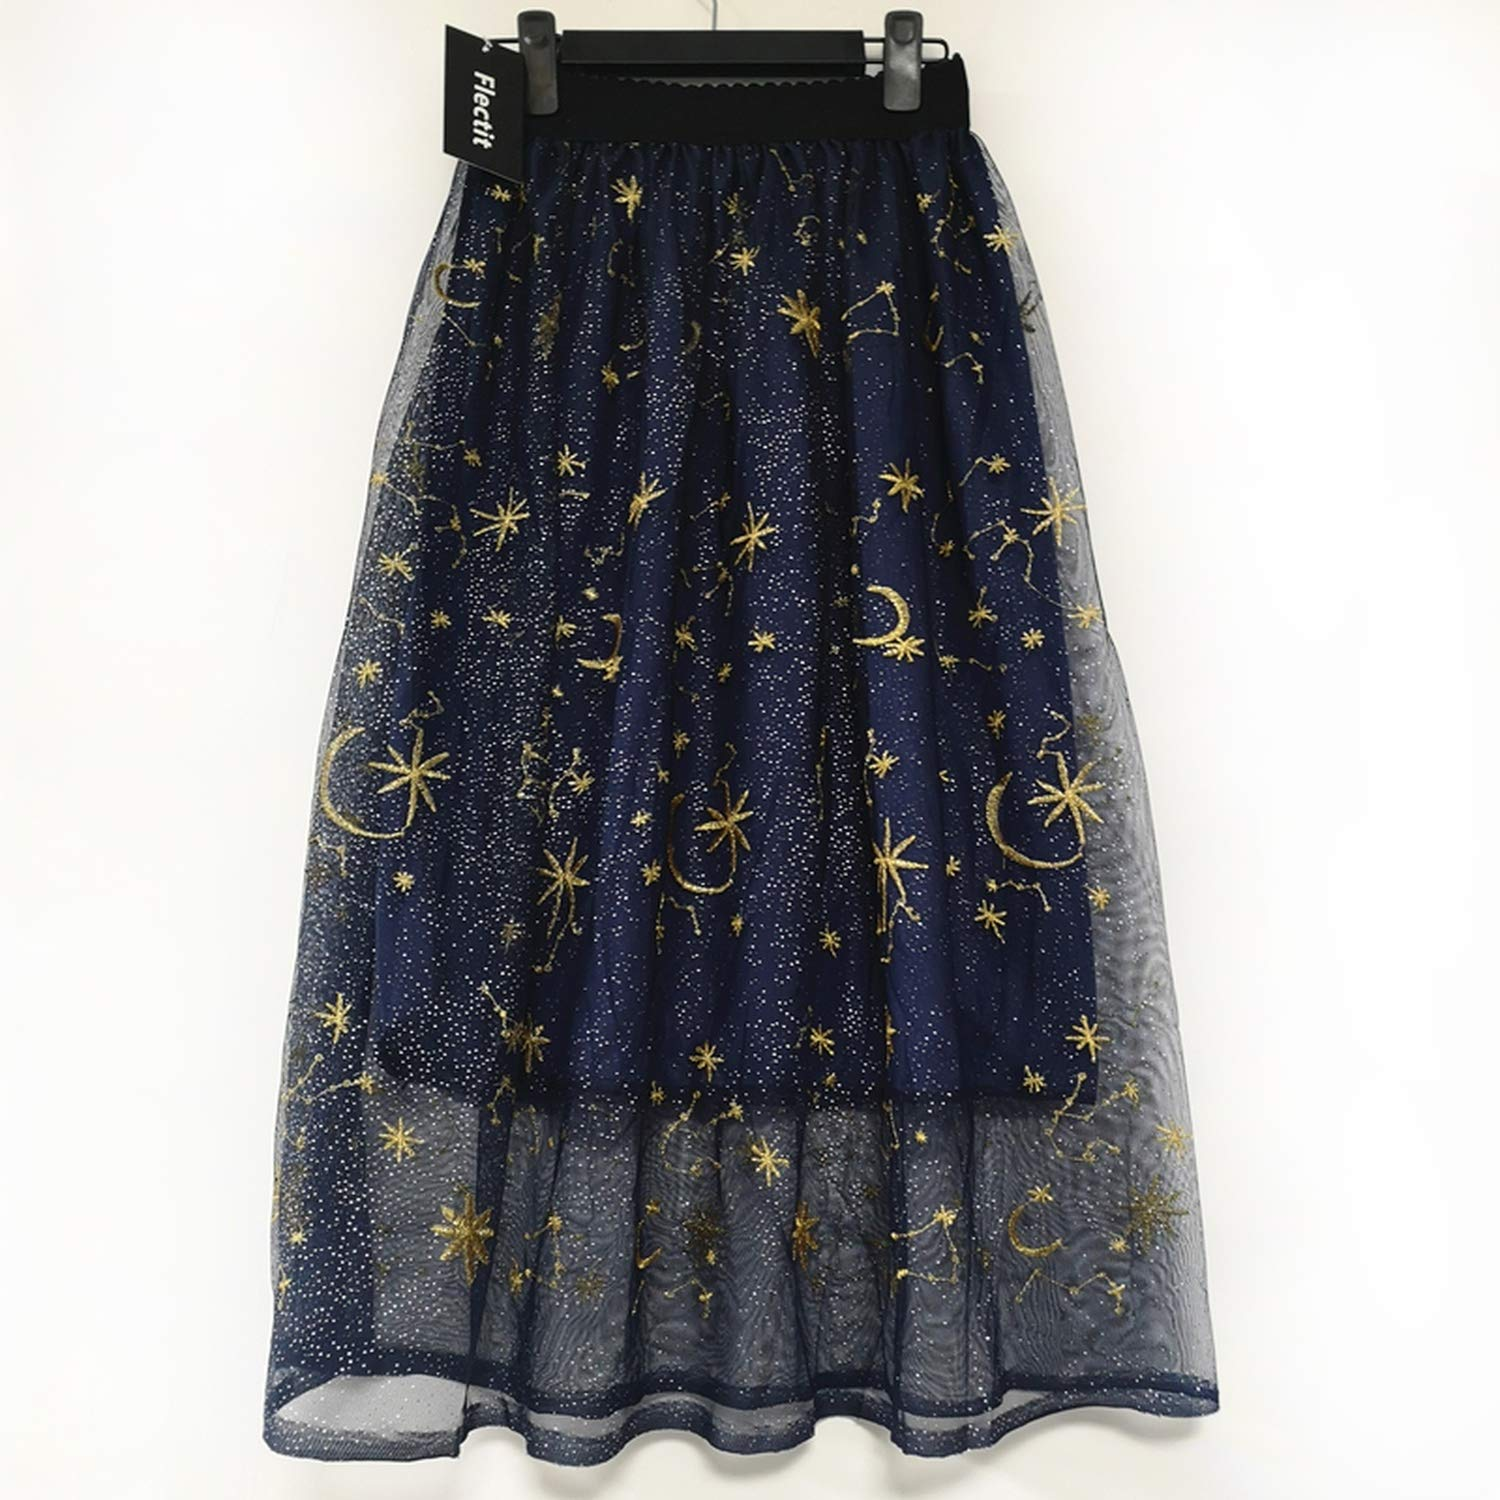 9fd0a4716a0c3 Flectit Gold Moon Star Embroidered Tulle Skirt Semi Sheer Fabric ...